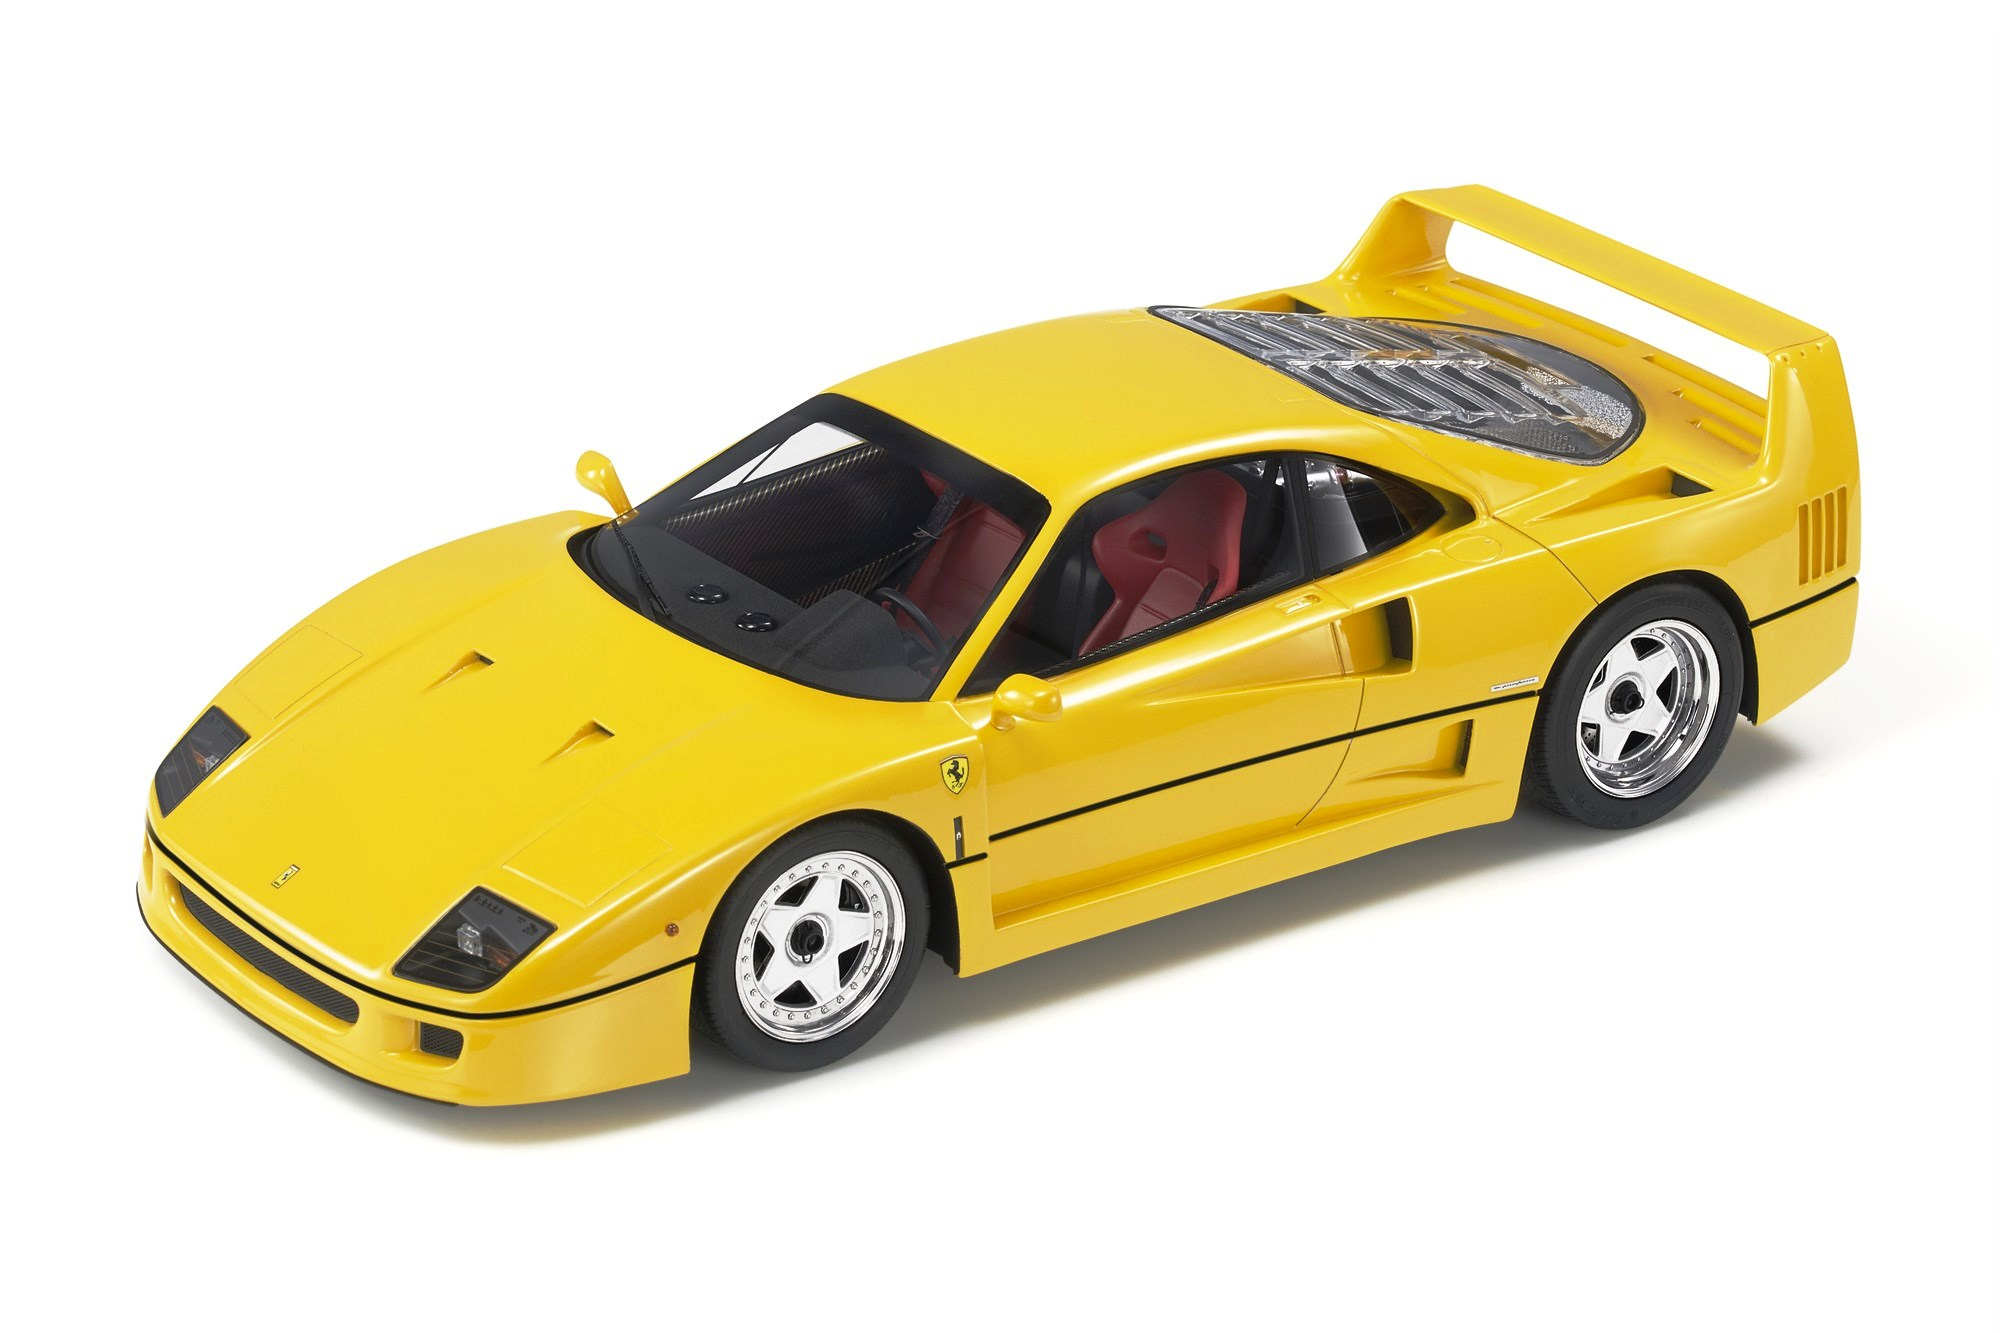 Ferrari F40 1987 yellow 1:18 Top Marques Collectibles